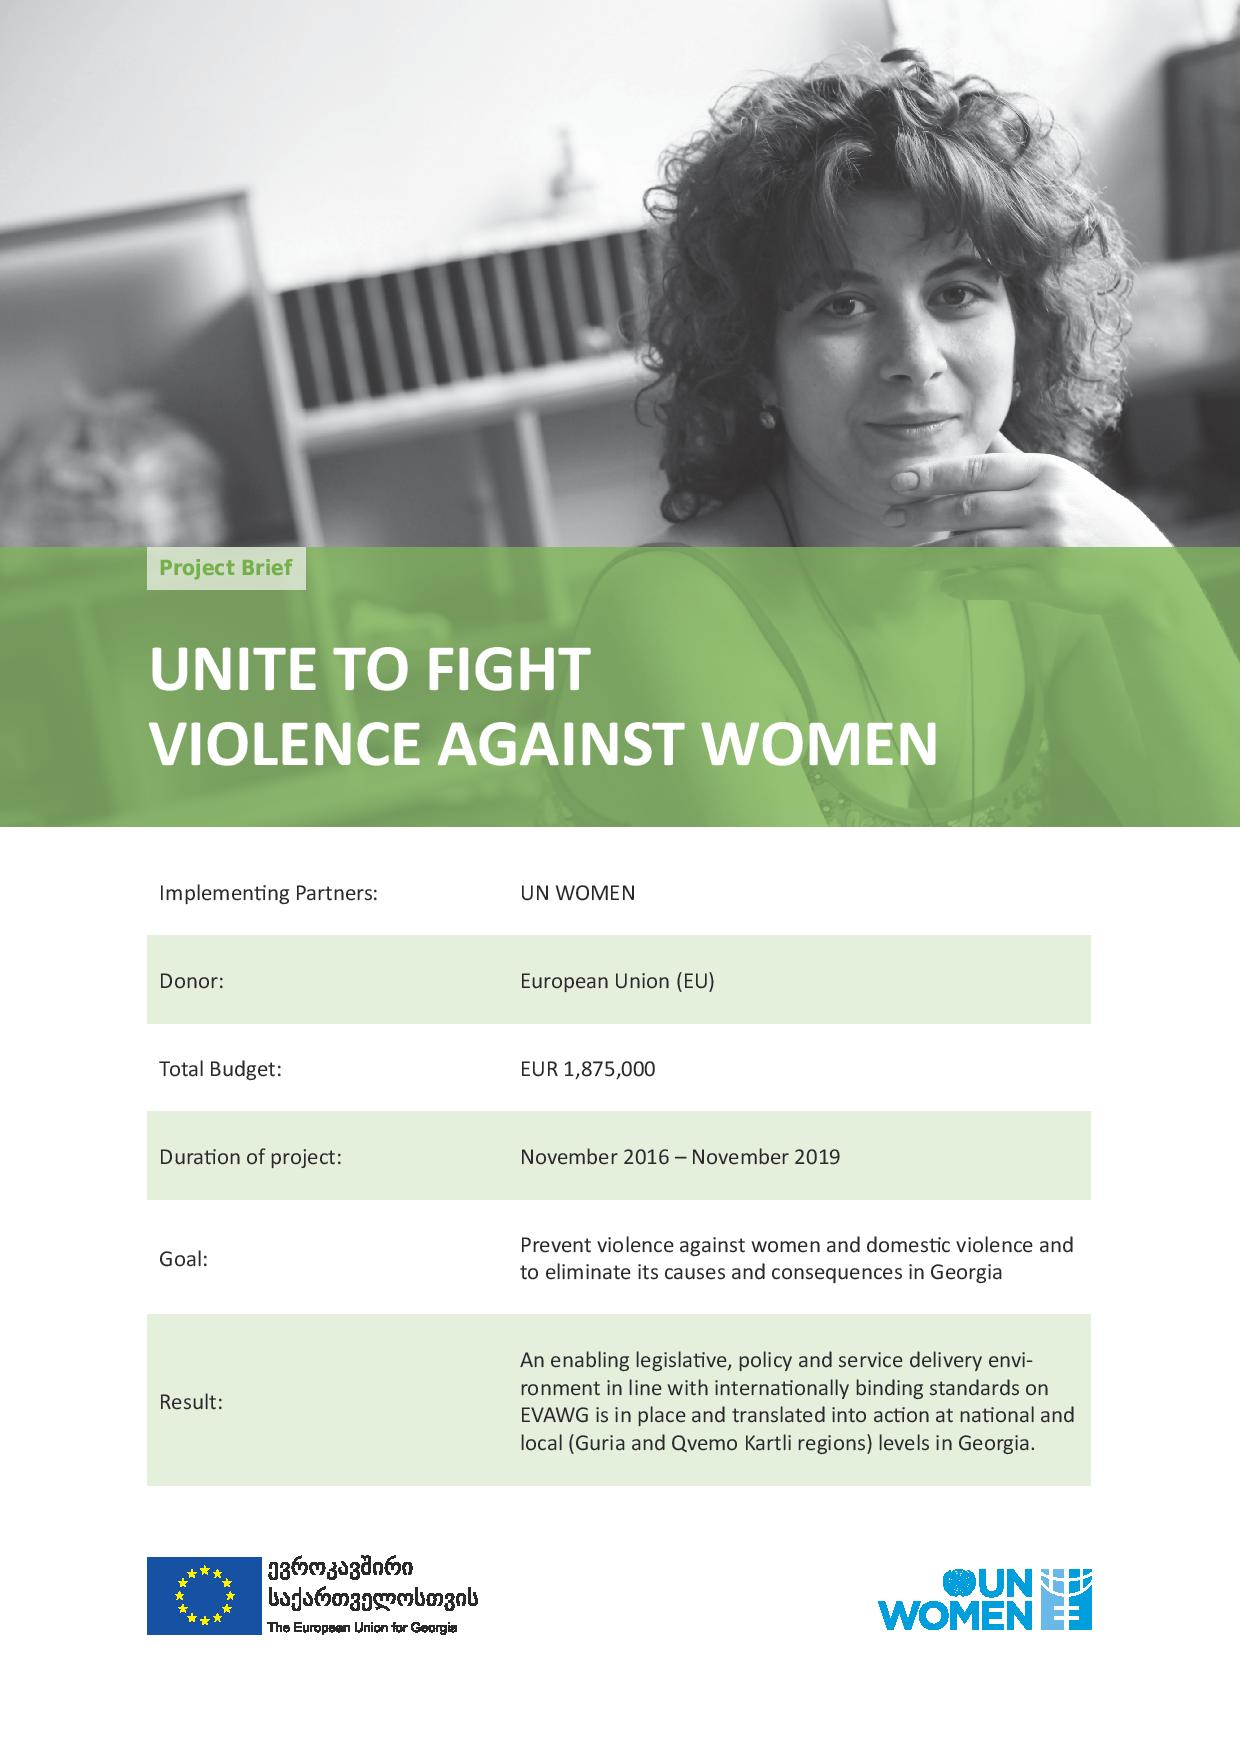 Unite to Fight Violence against Women